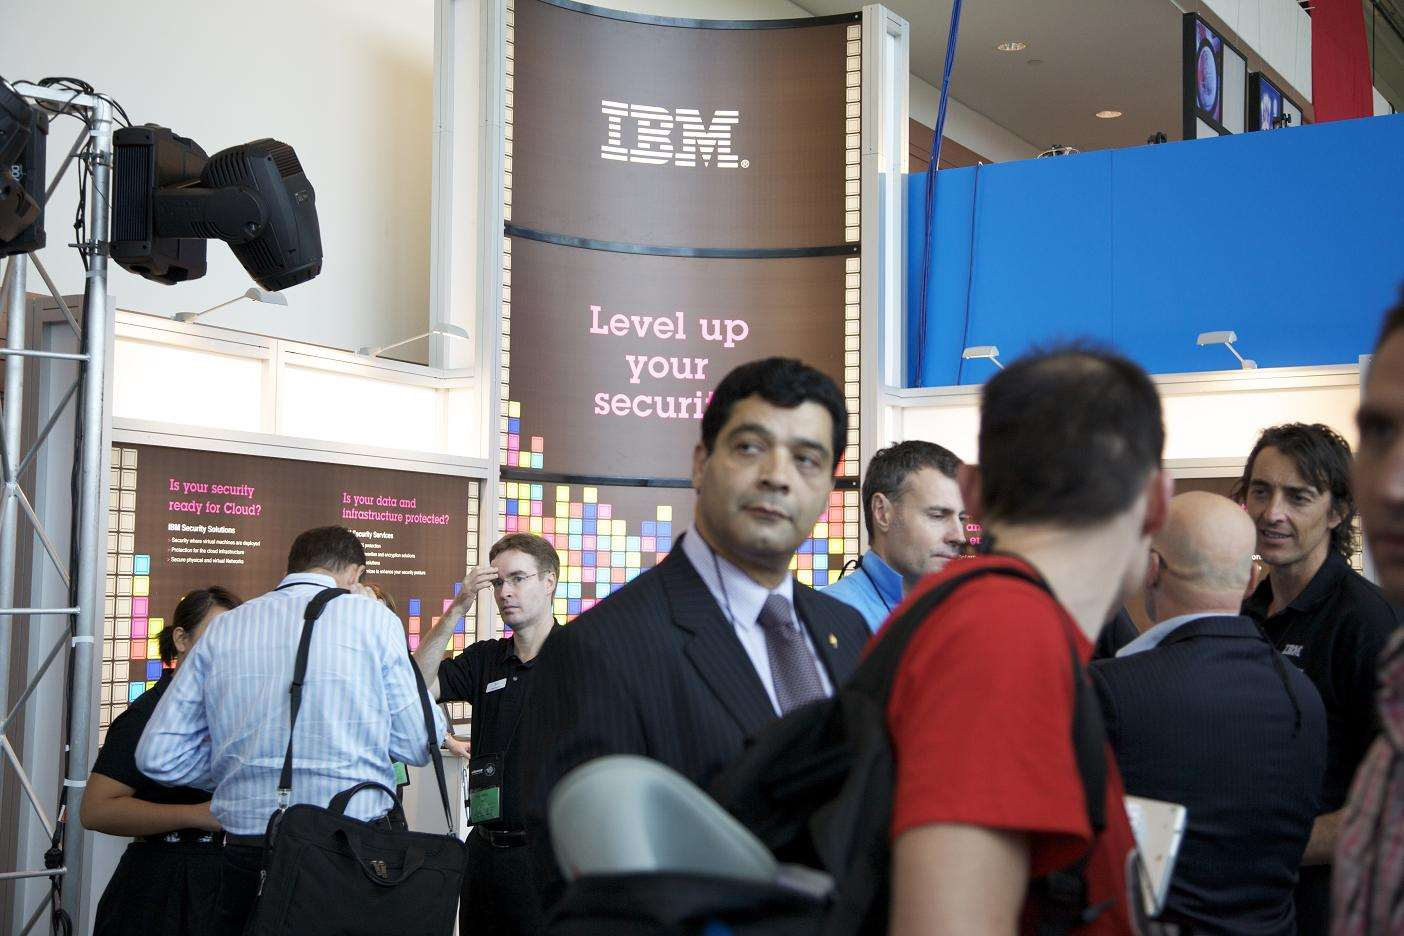 Big jammer - IBM's 5nm chip promises 'performance and power'